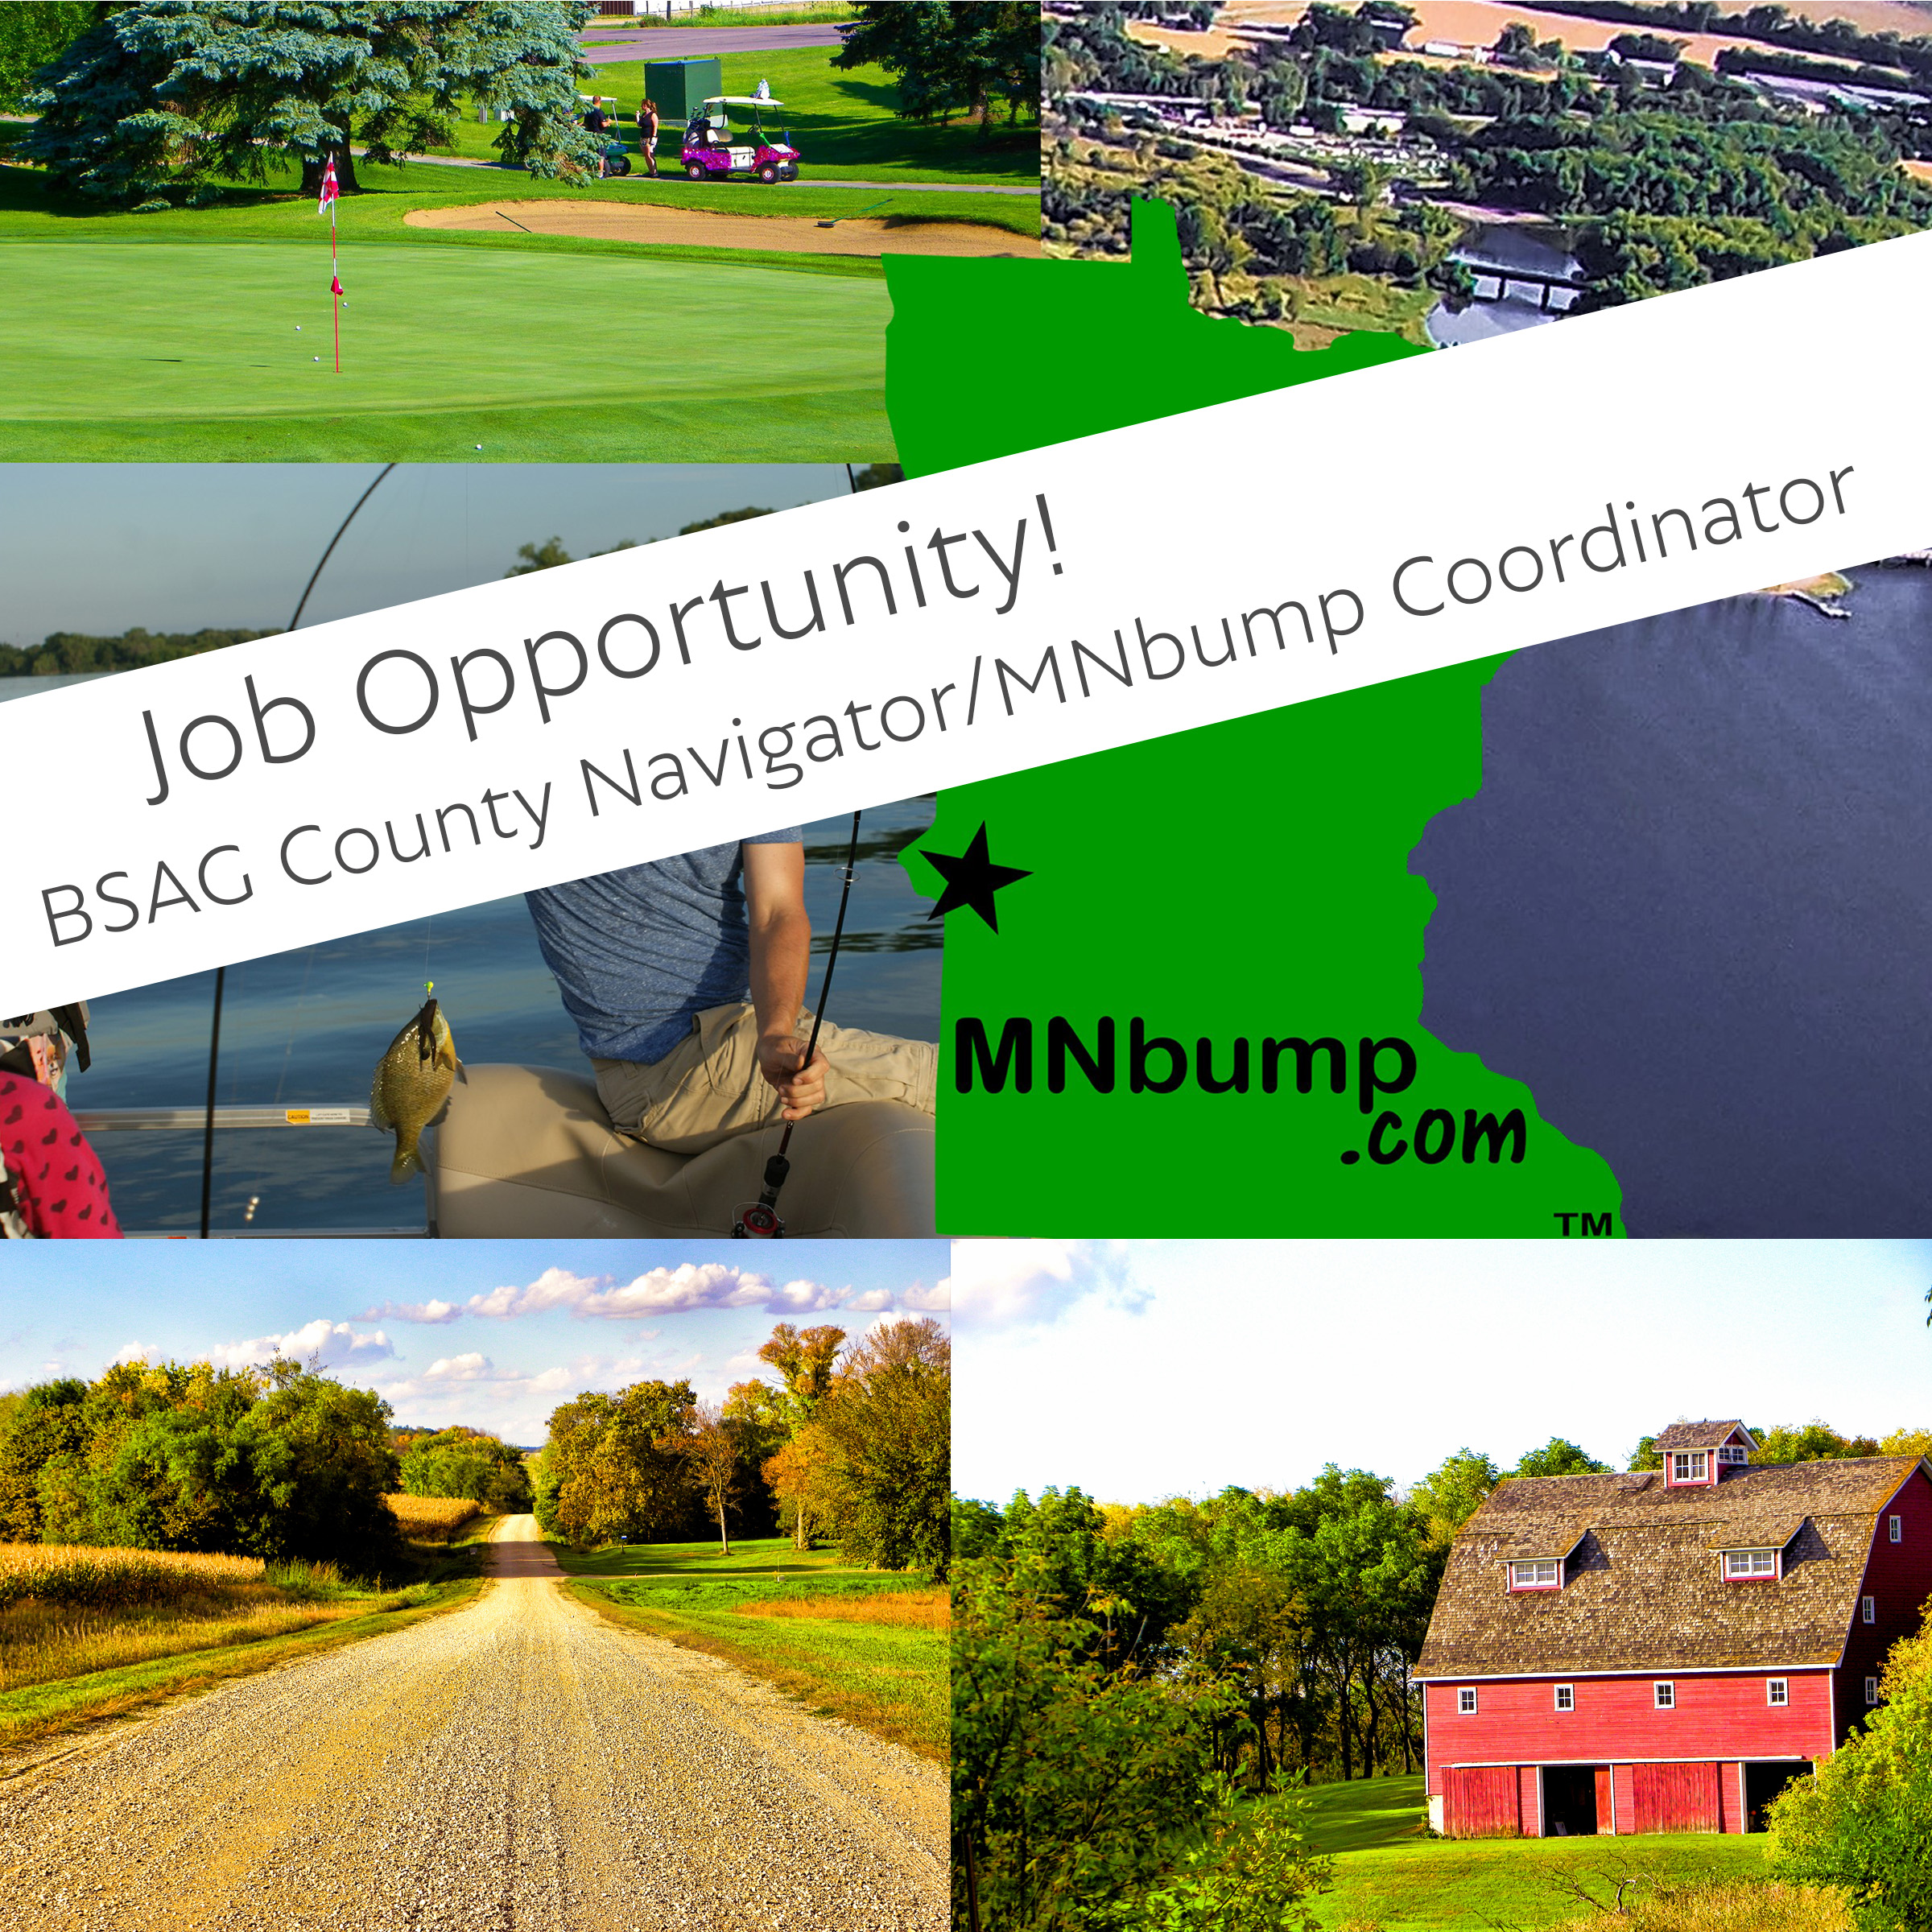 MNbump RFP (Position Opening)